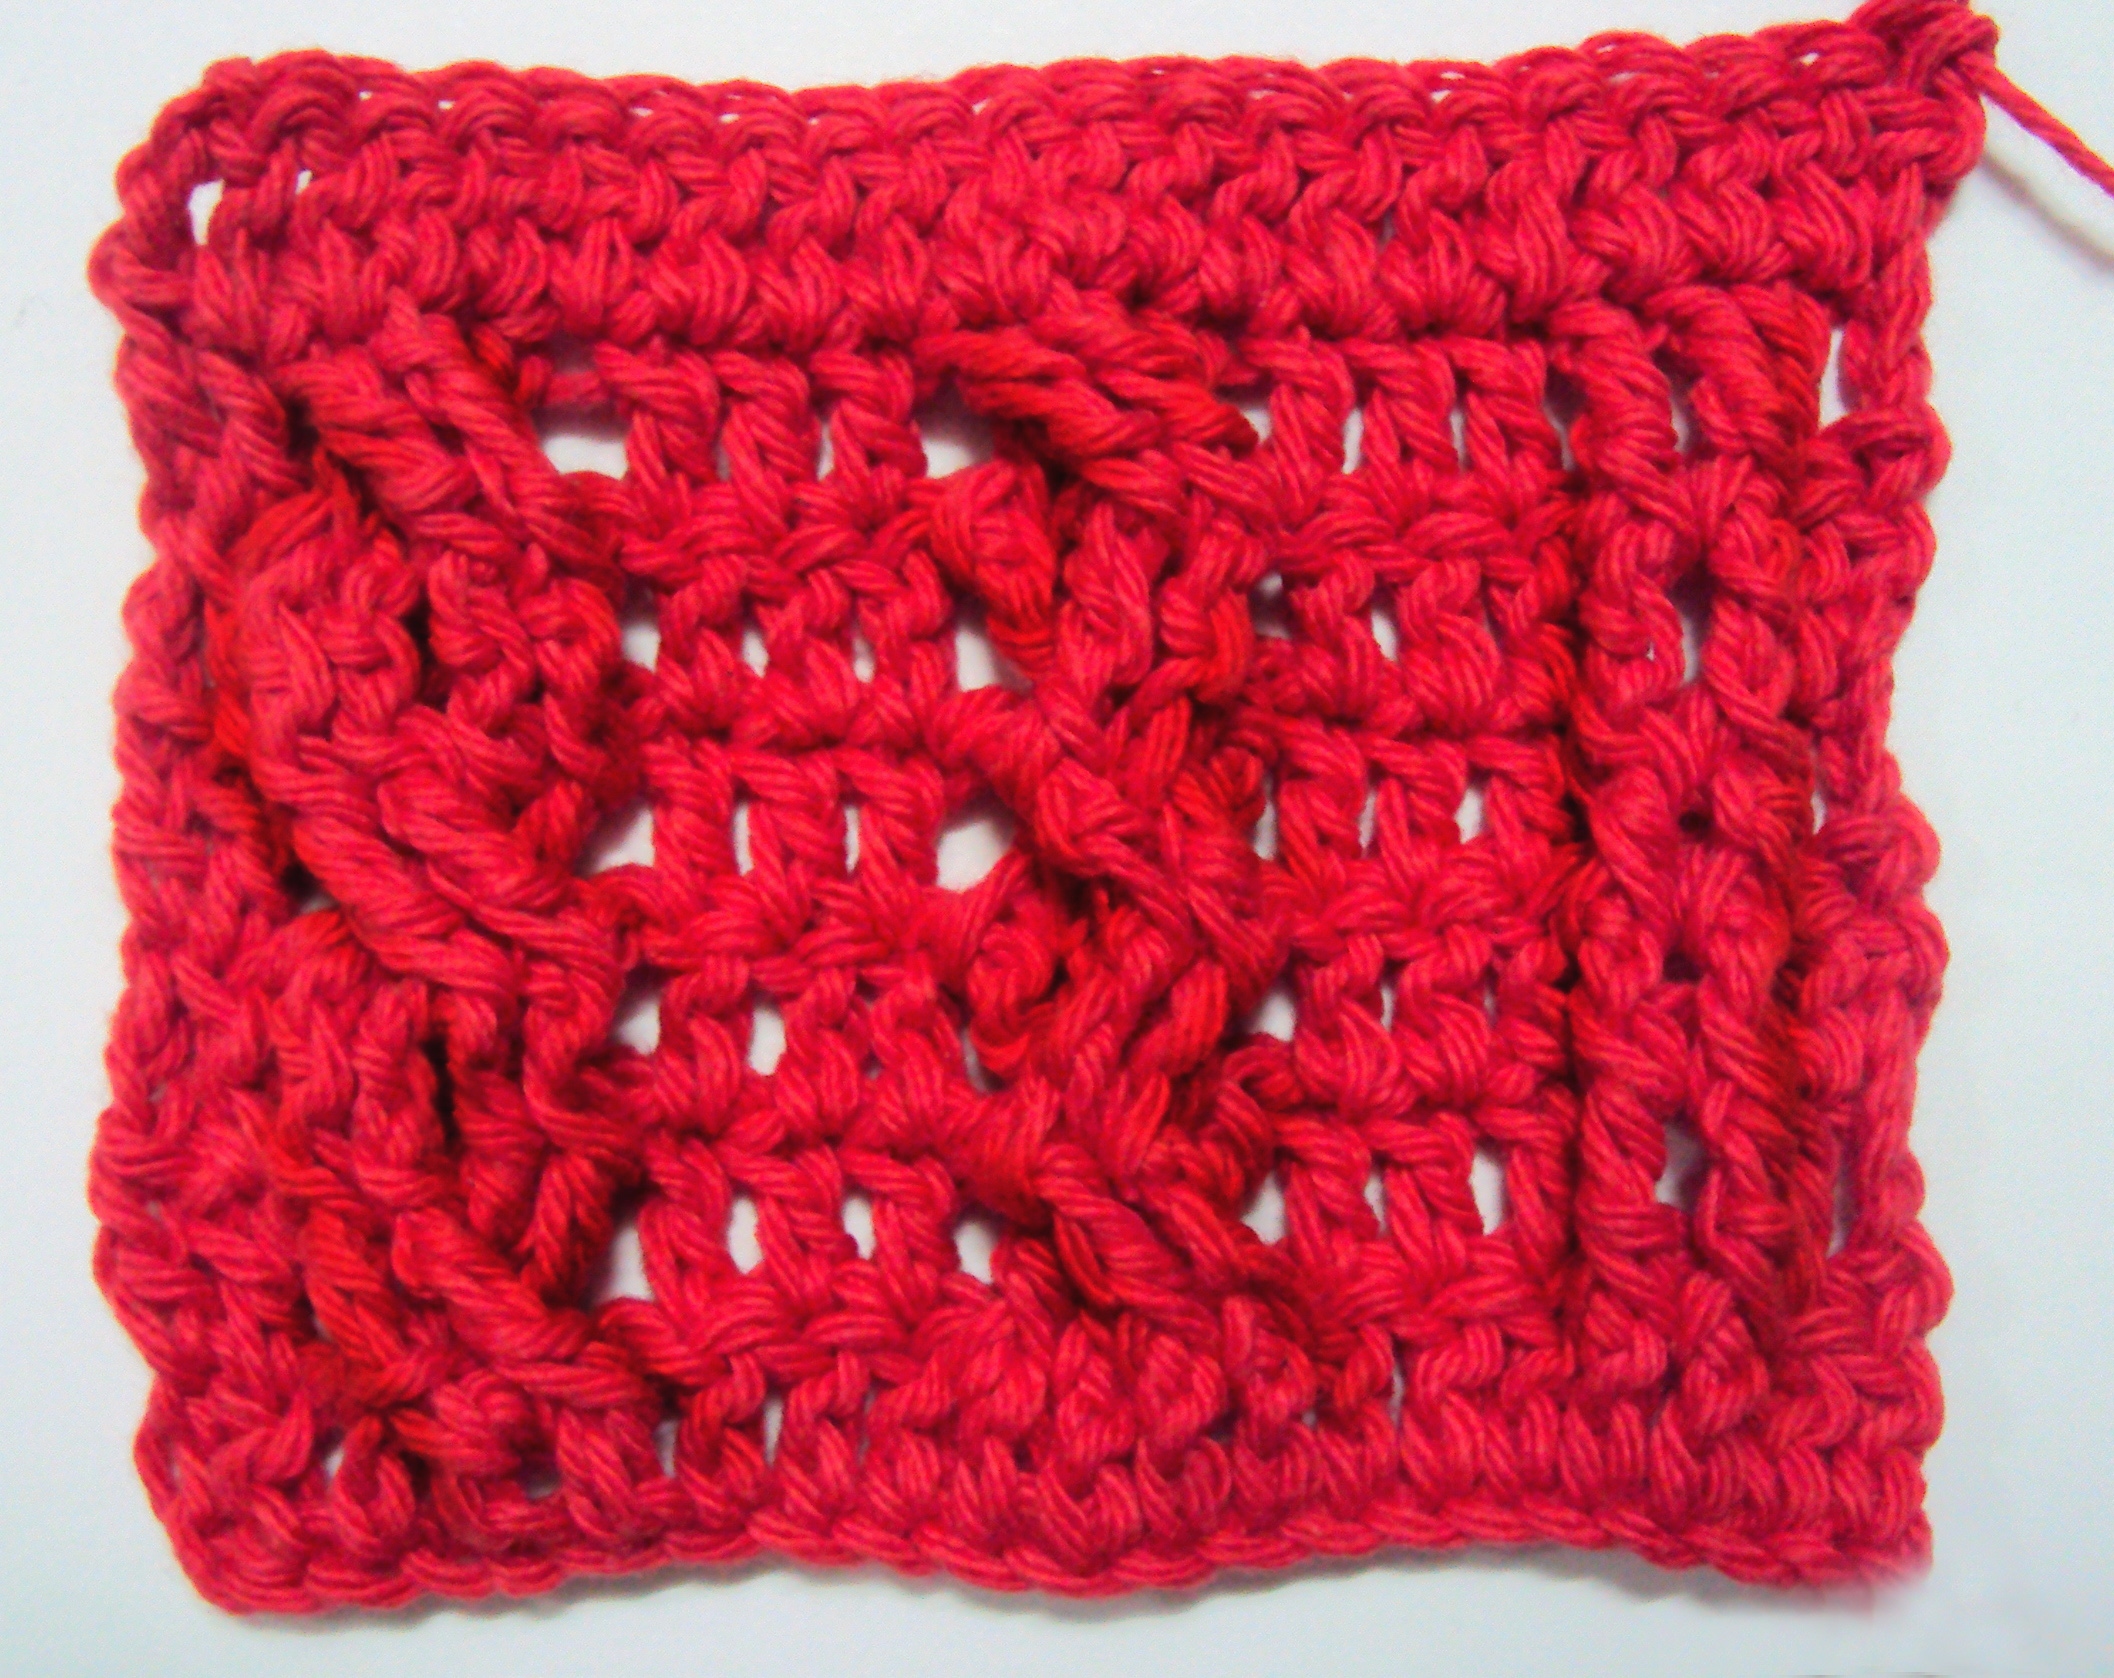 Crochet Stitches On Video : Crochet Stitches How to crochet: cable stitches